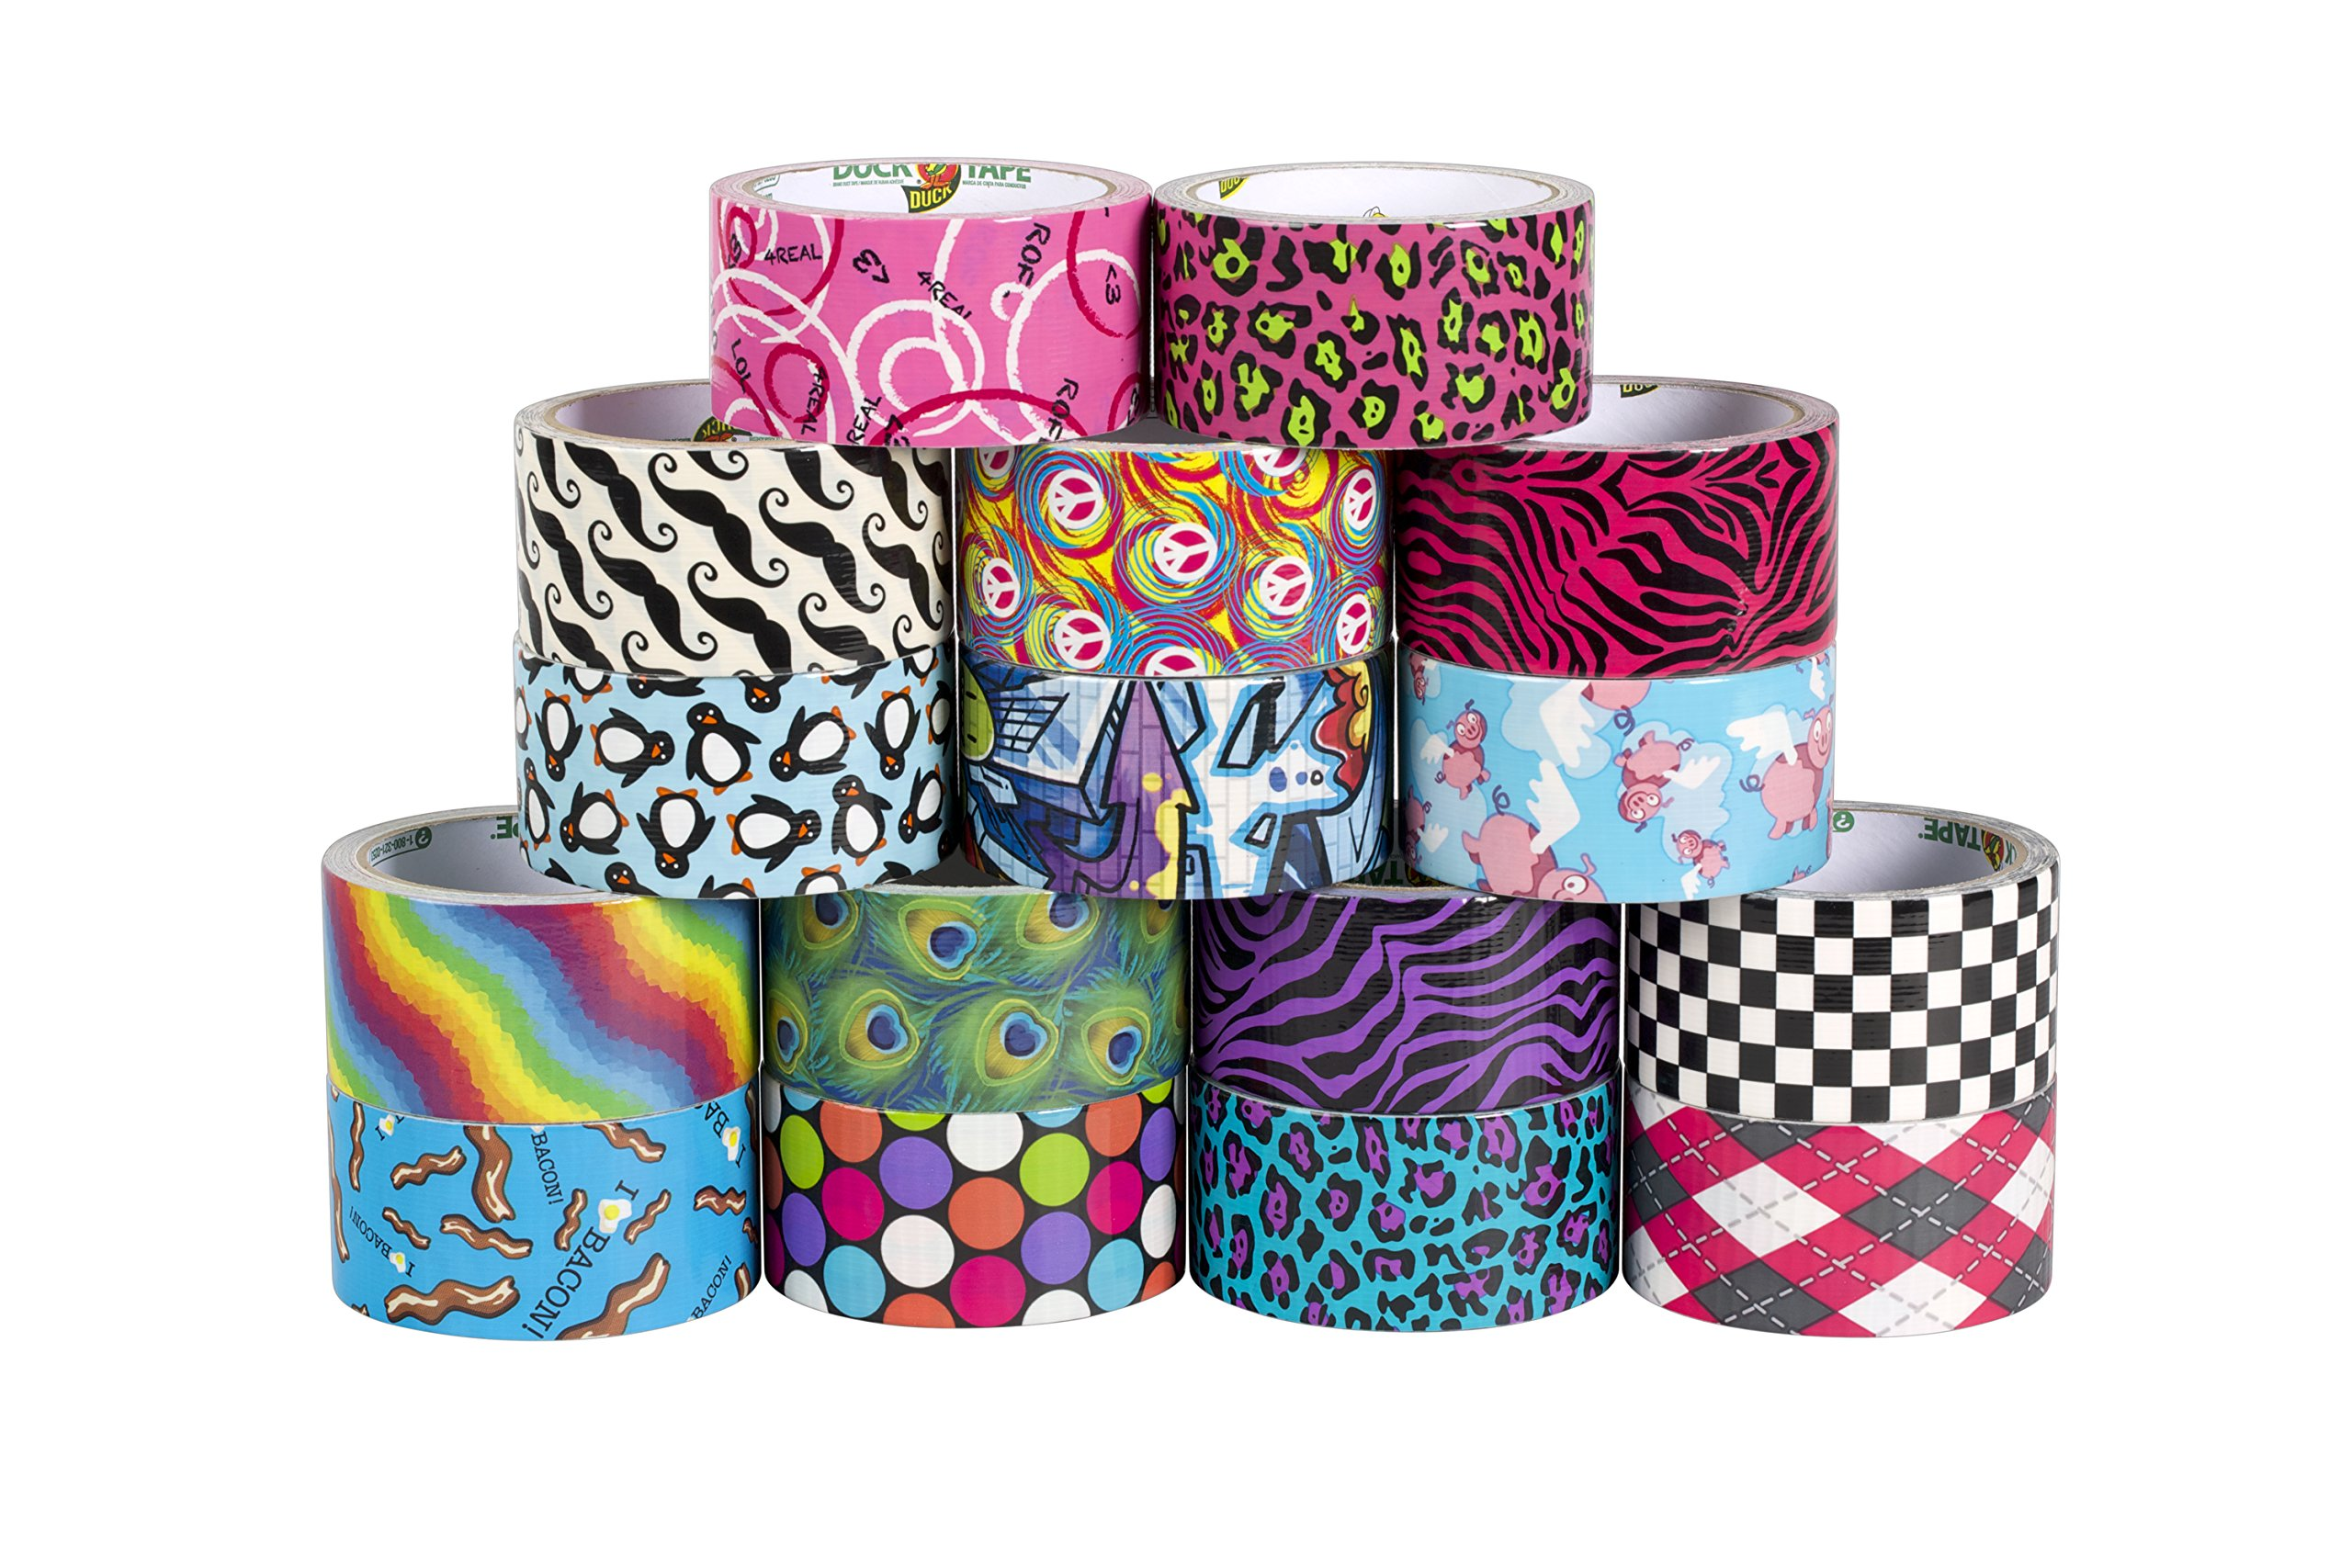 Duck Brand 280977 Printed Duct Tape, Pink Argyle, 1.88 Inches x 10 Yards, Single Roll by Duck (Image #6)